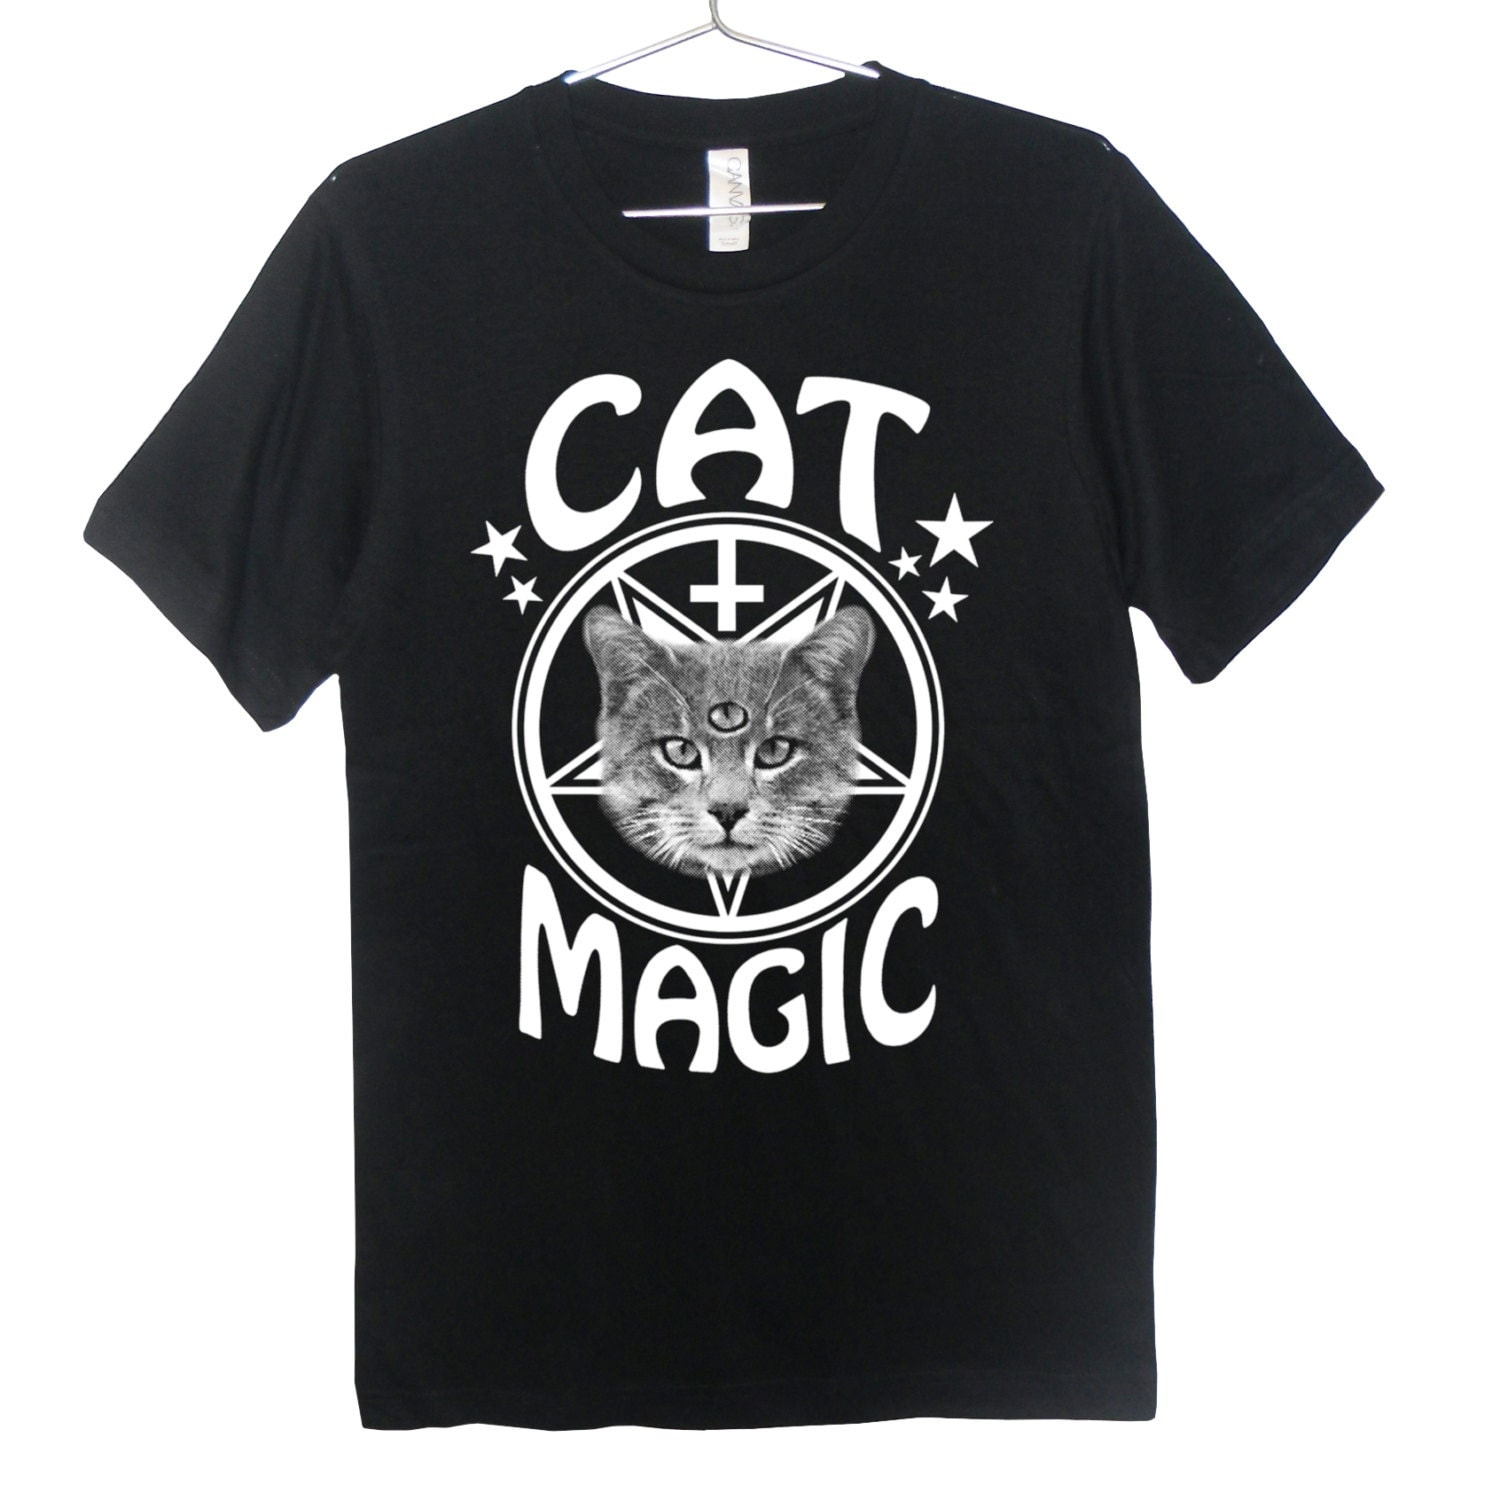 Occult Cat T-Shirt - Cat Magic, Goth, Pastel Goth, Grunge, Satanic, Hipster, Inverted Cross